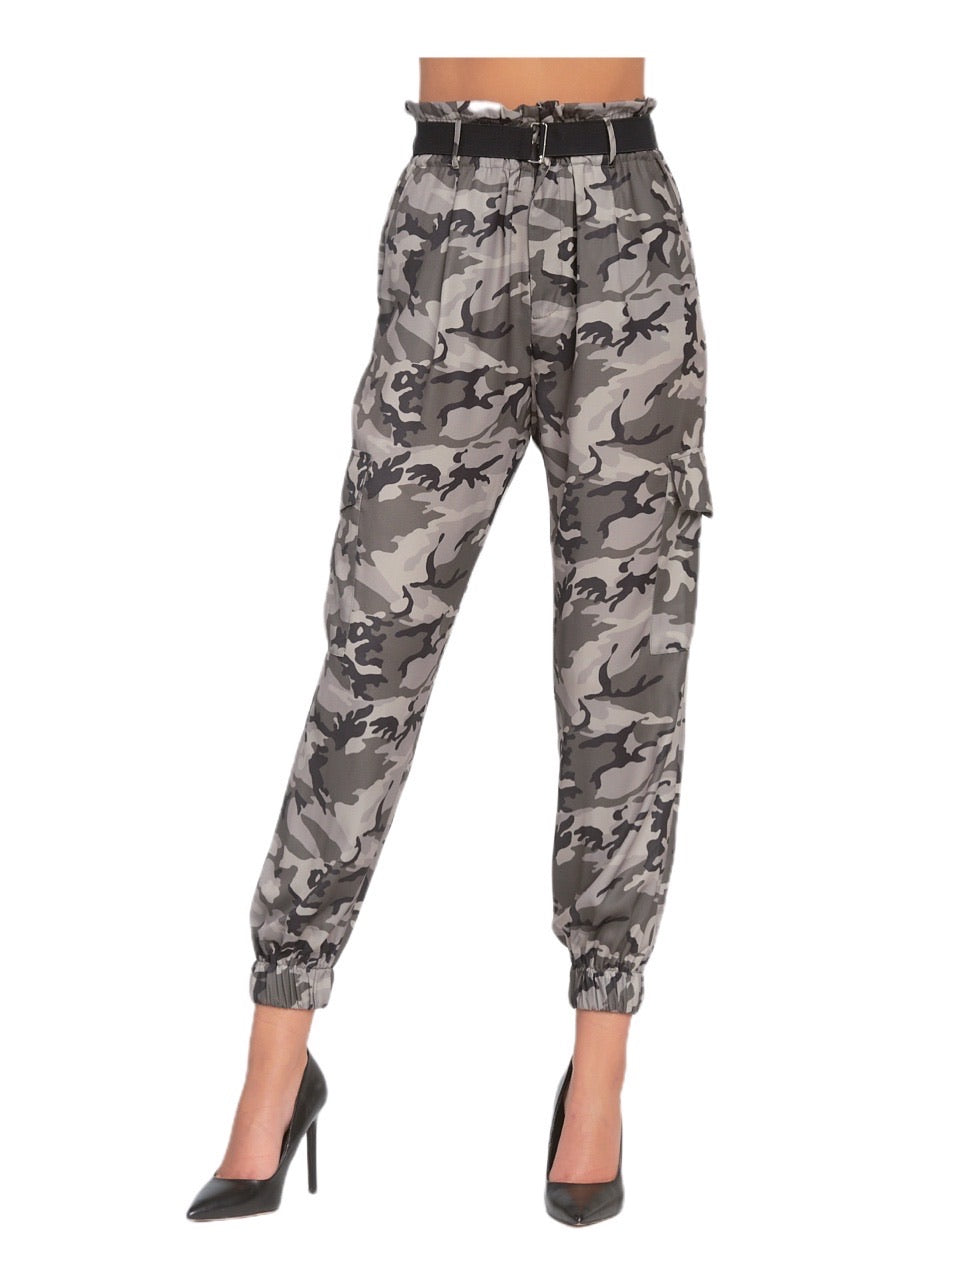 Elan High Waist Camo Cargo Pants